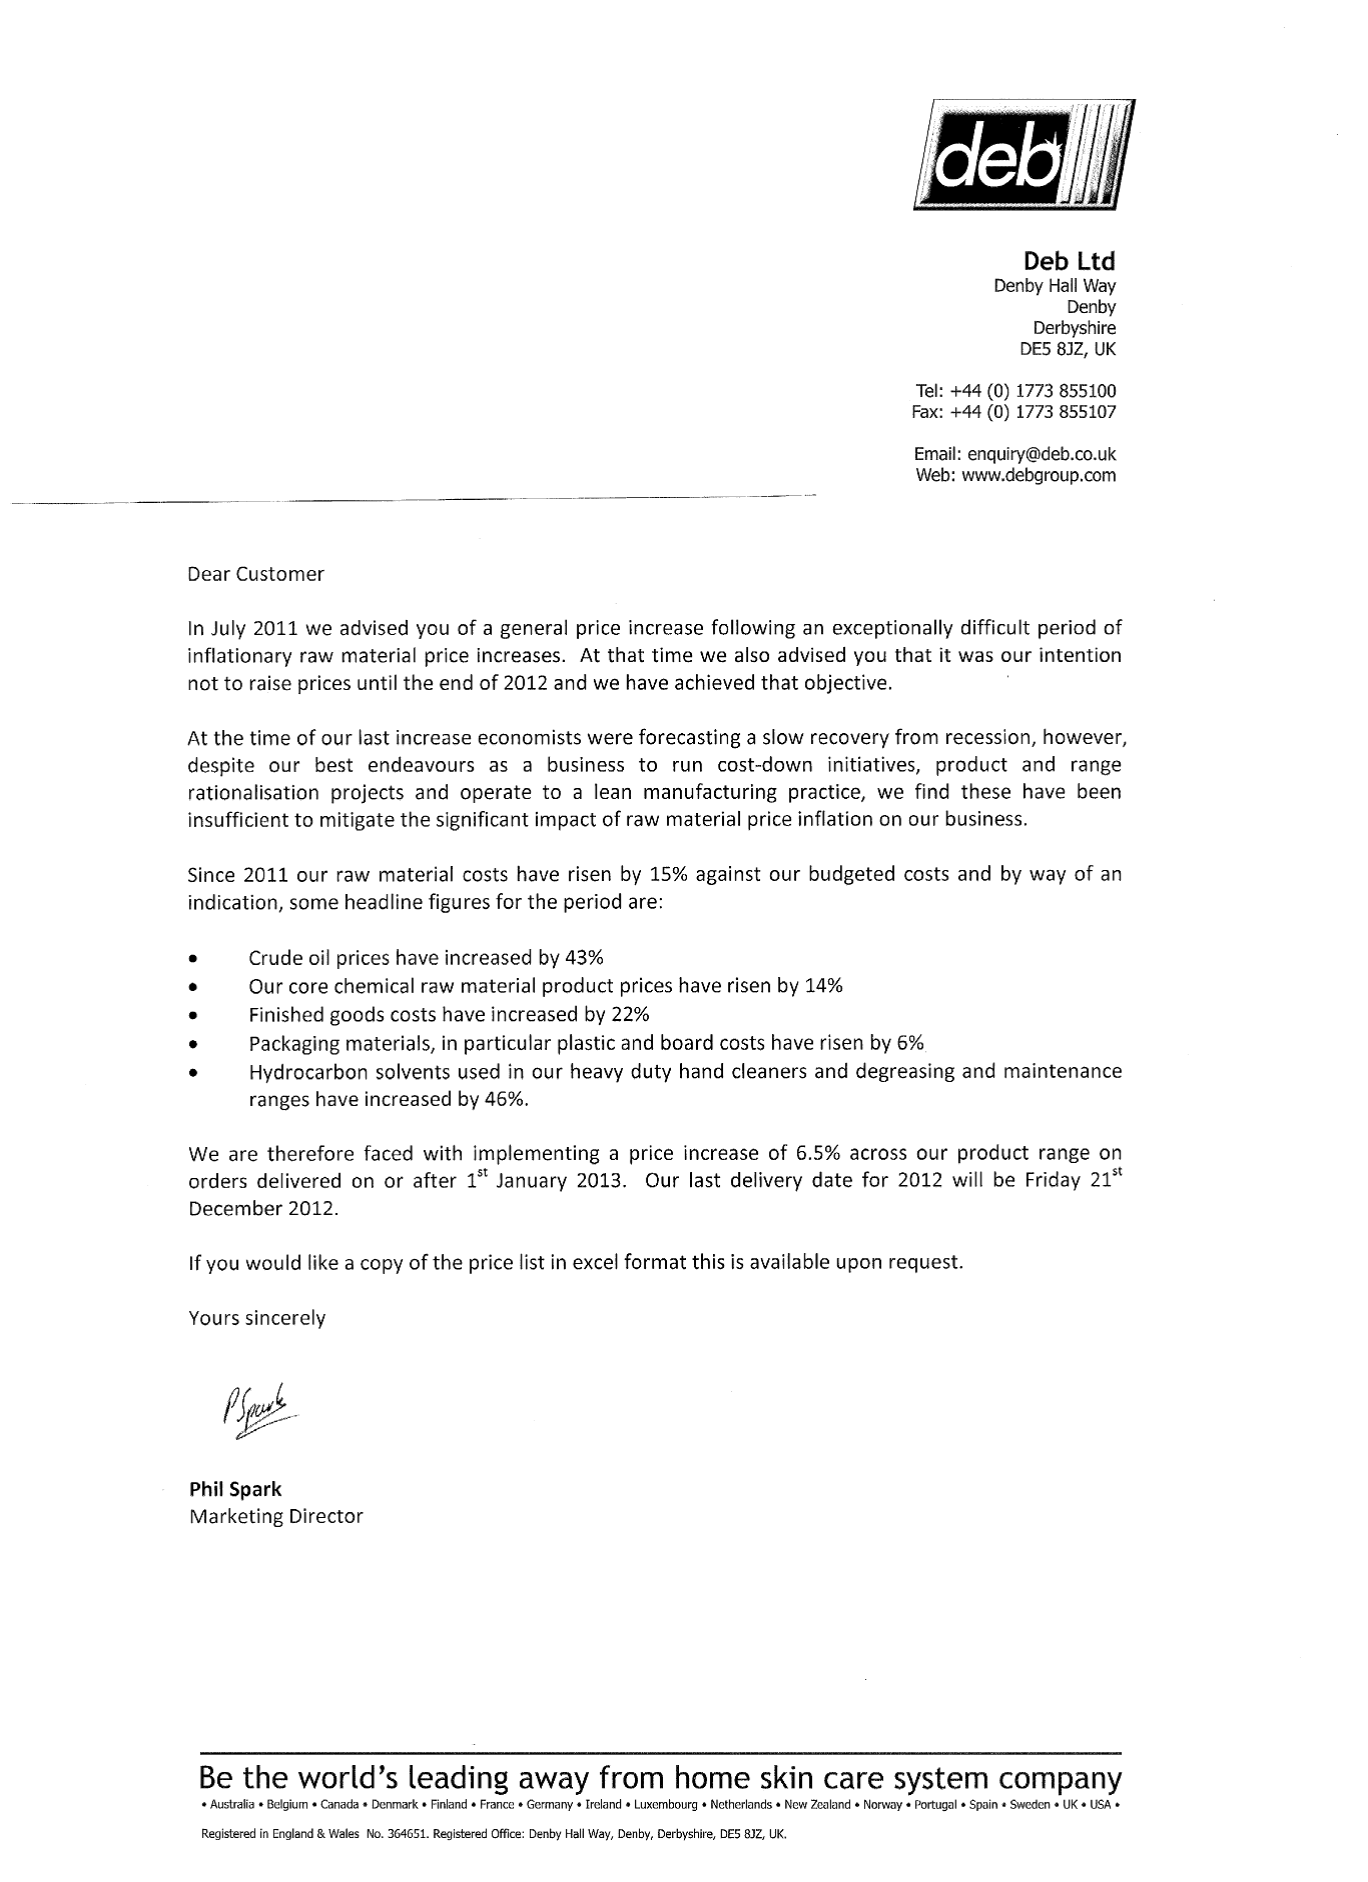 Price Increase Letter Template Commonpence Co